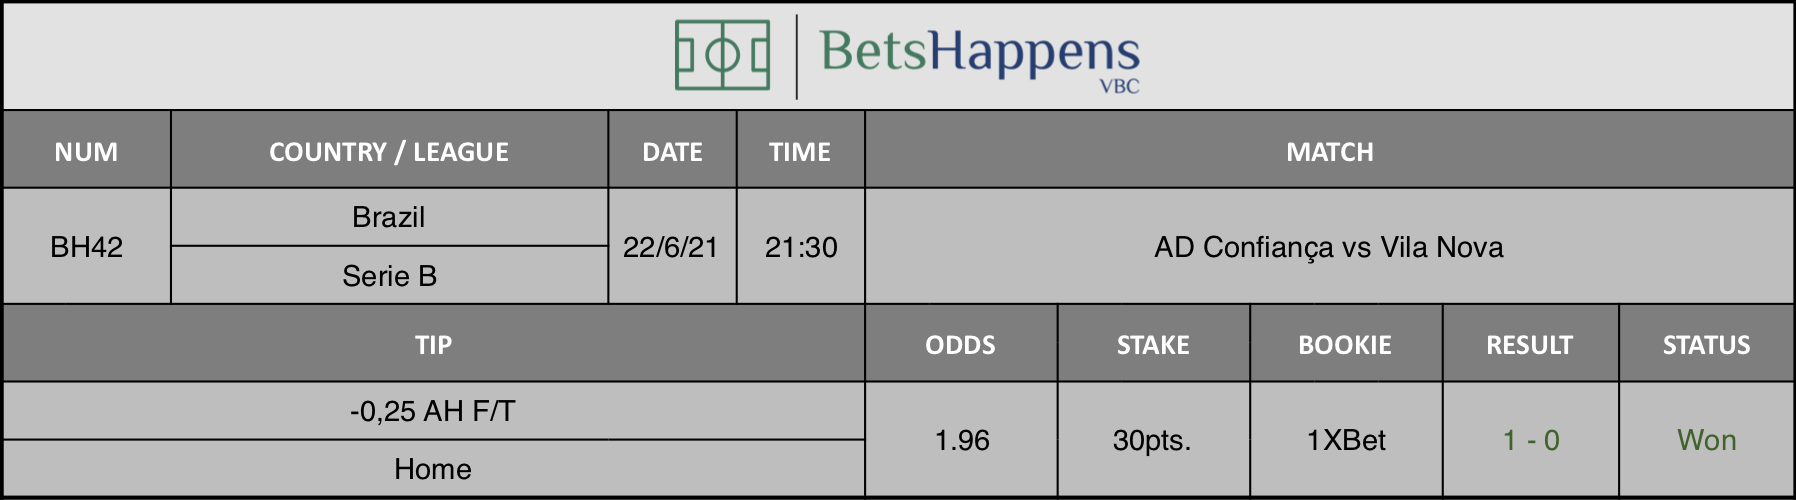 Results of our tip for the AD Confiança vs Vila Nova match -0,25 AH F/T Home is recommended.